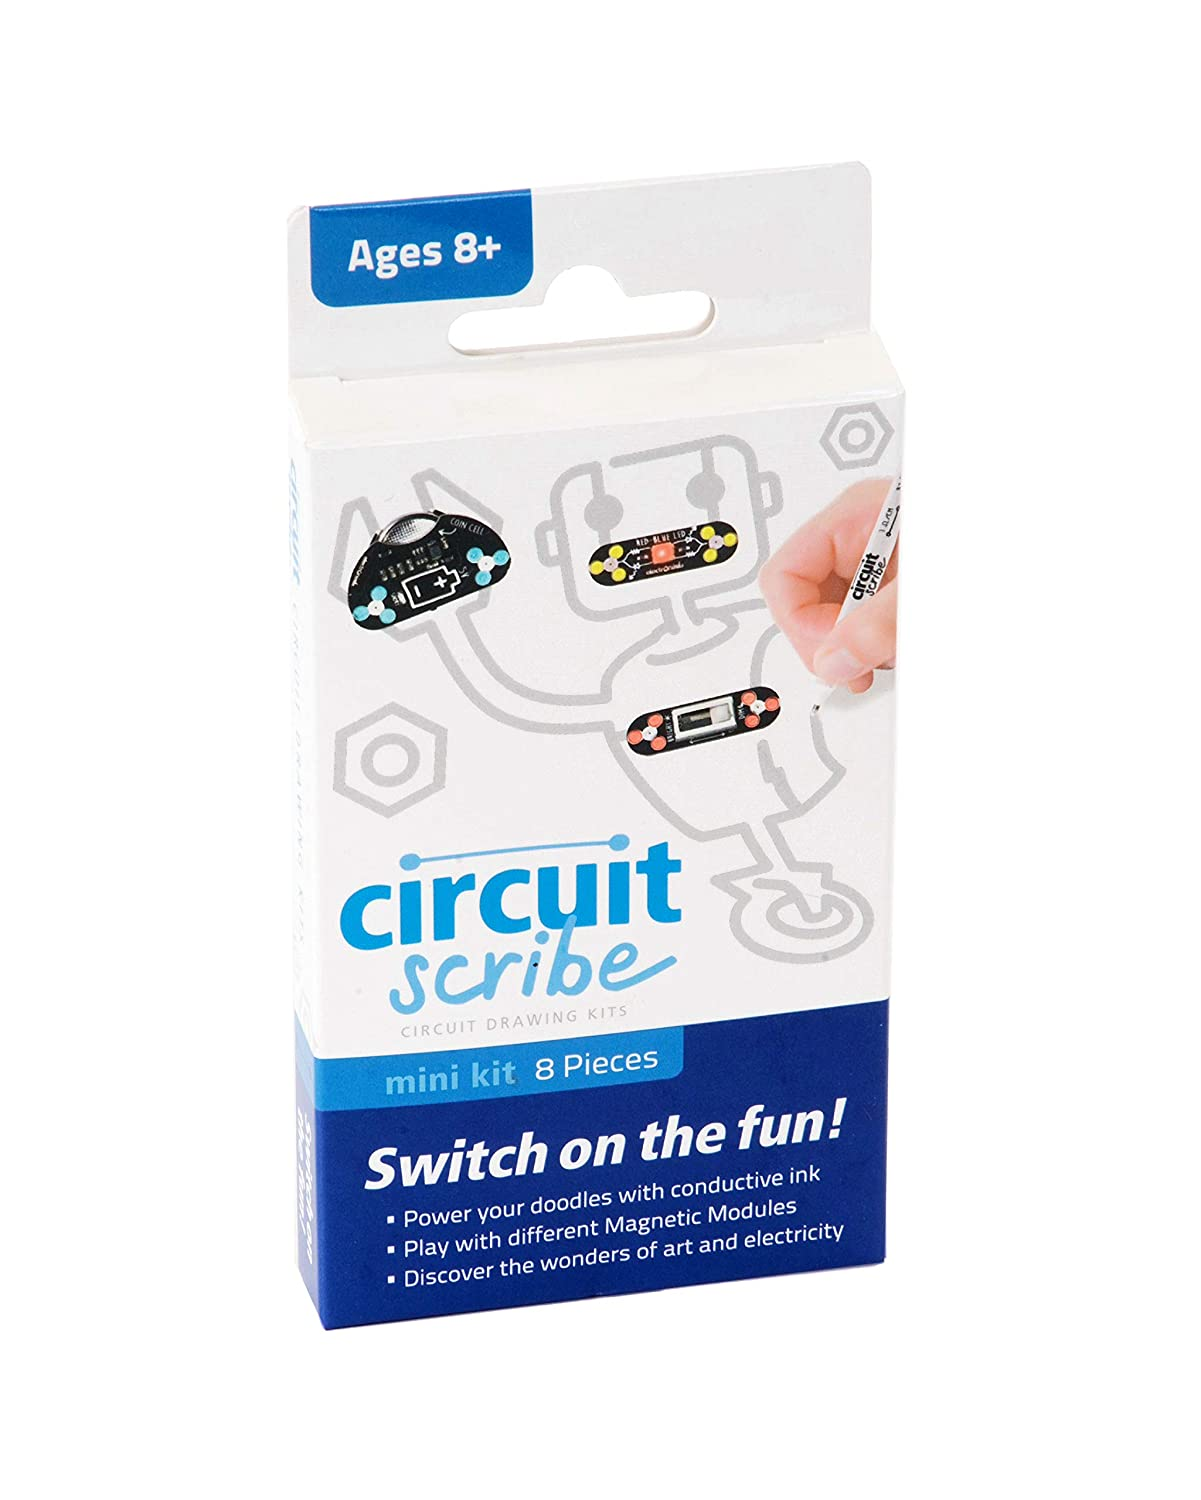 Circuit Scribe Mini Kit Create Your Own Circuits Power Of Led Energy Saving Lamp Basiccircuit Instantly Includes Everything You Need To Learn And Explore Basic Circuitry With Hands On